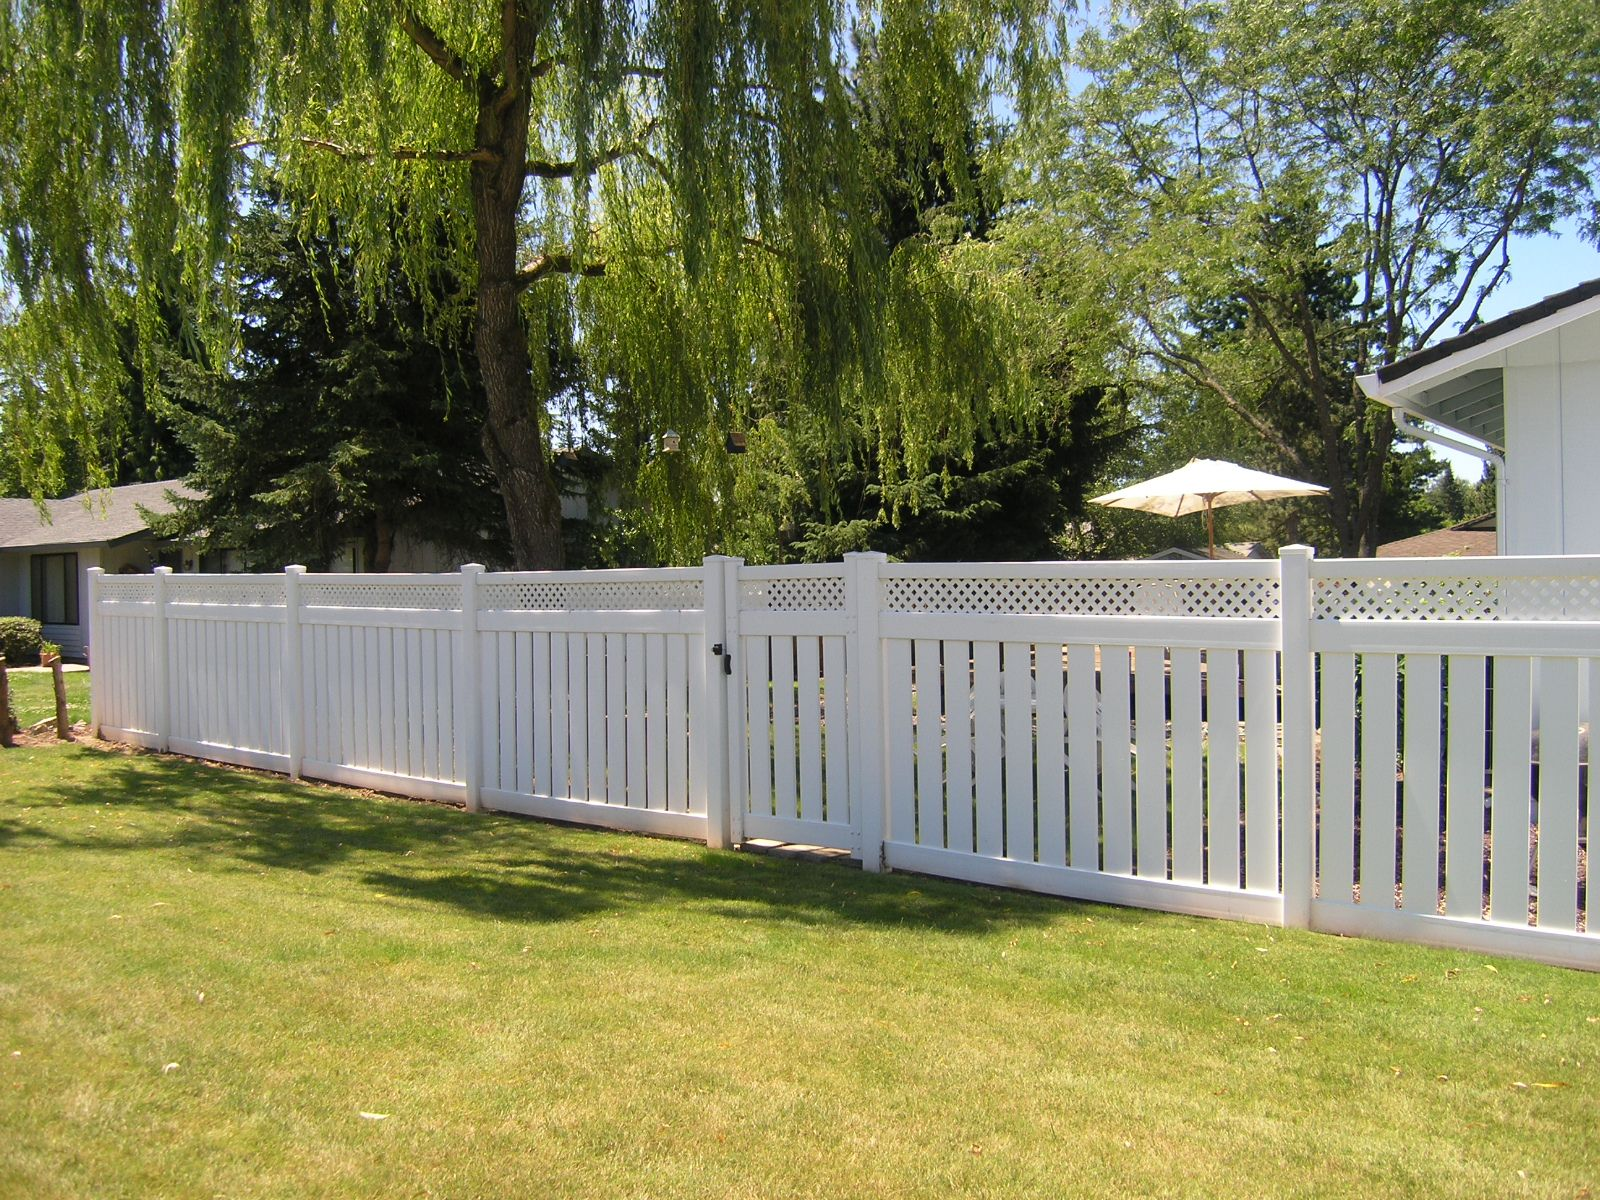 Semi Private Vinyl Fencing Is Durable Beautiful And Great For Adding A Bit Of Privacy Without Blocking Everything Out Outdoor Patio Diy Patio Table Patio